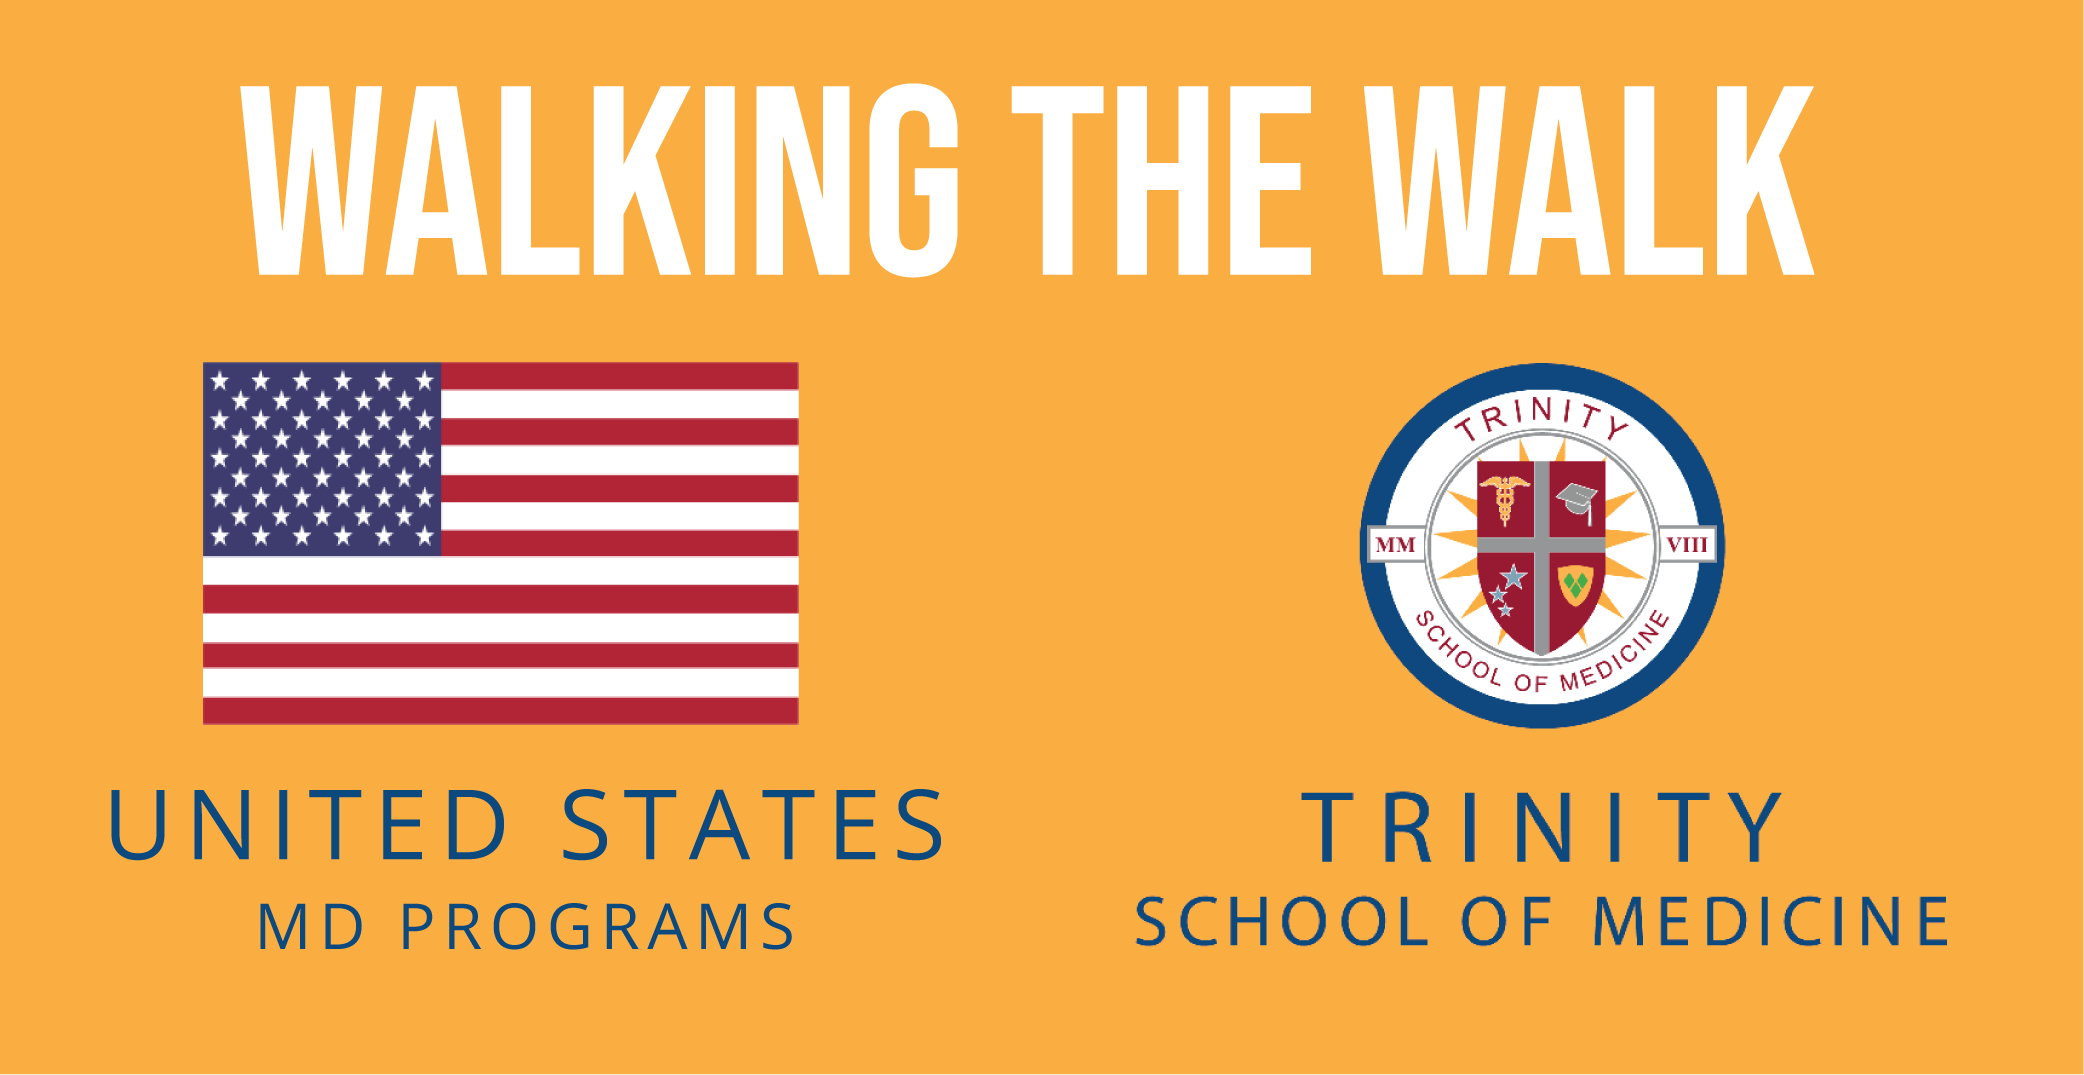 The US Medical School Experience in the Caribbean: Quality, Opportunity, and the Trinity Advantage